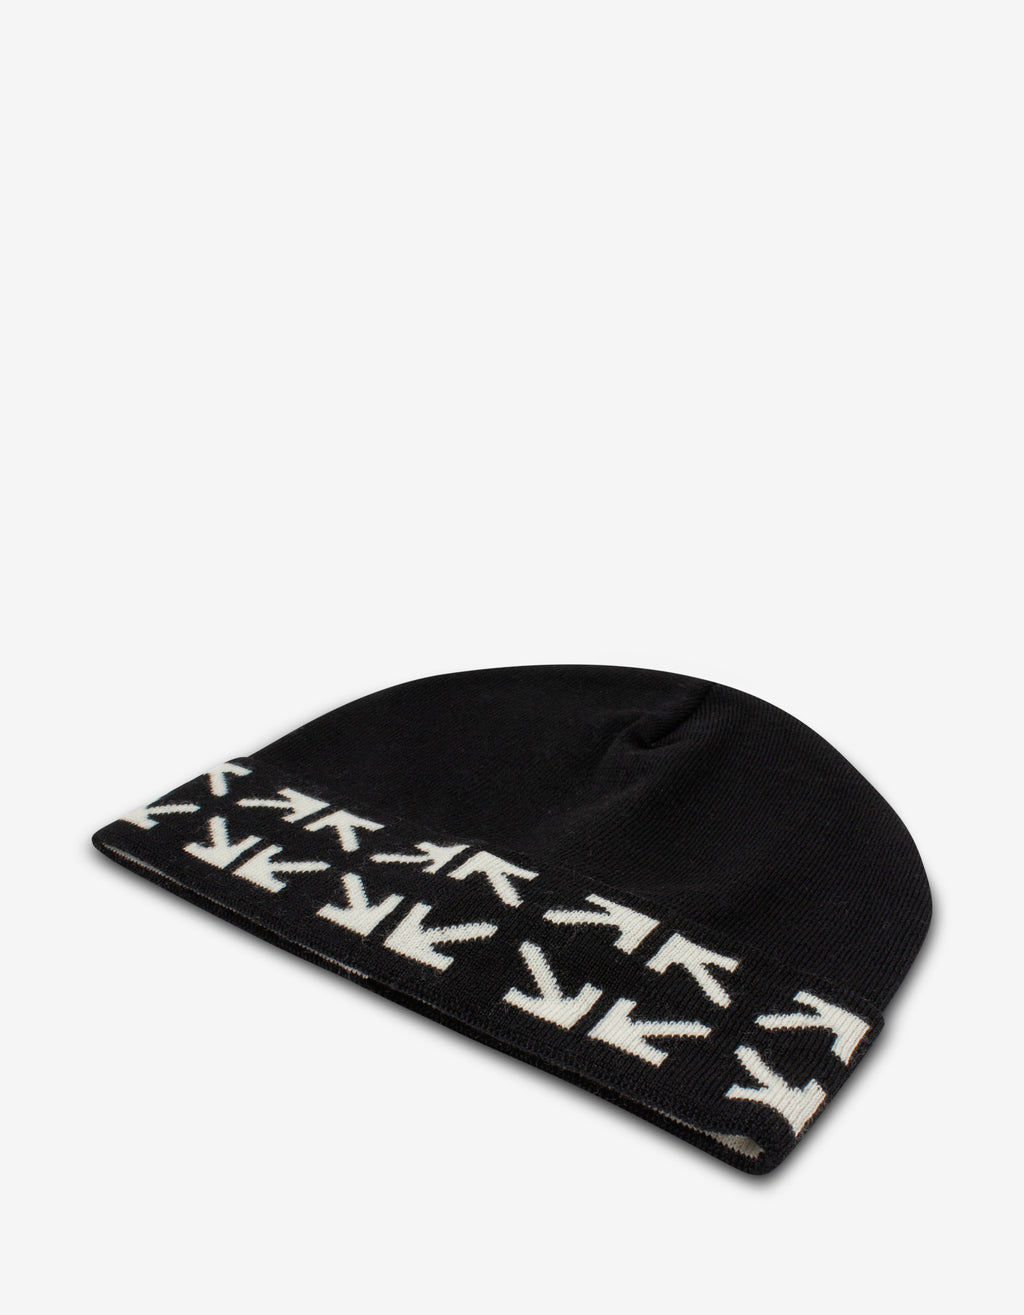 Black Arrows Beanie Hat